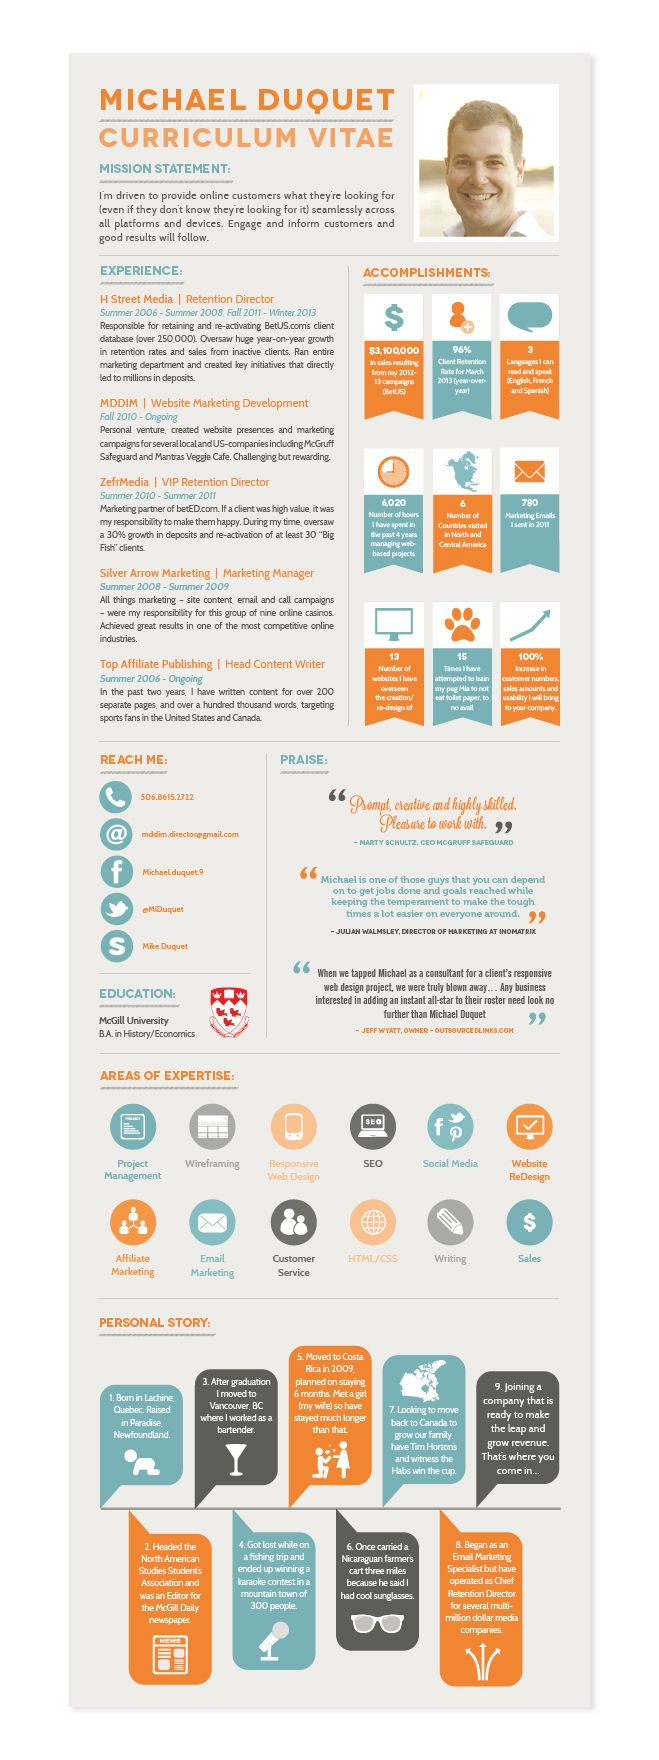 An infographic CV or Resume I designed for Mike Duquet #infographic #CV #Resume